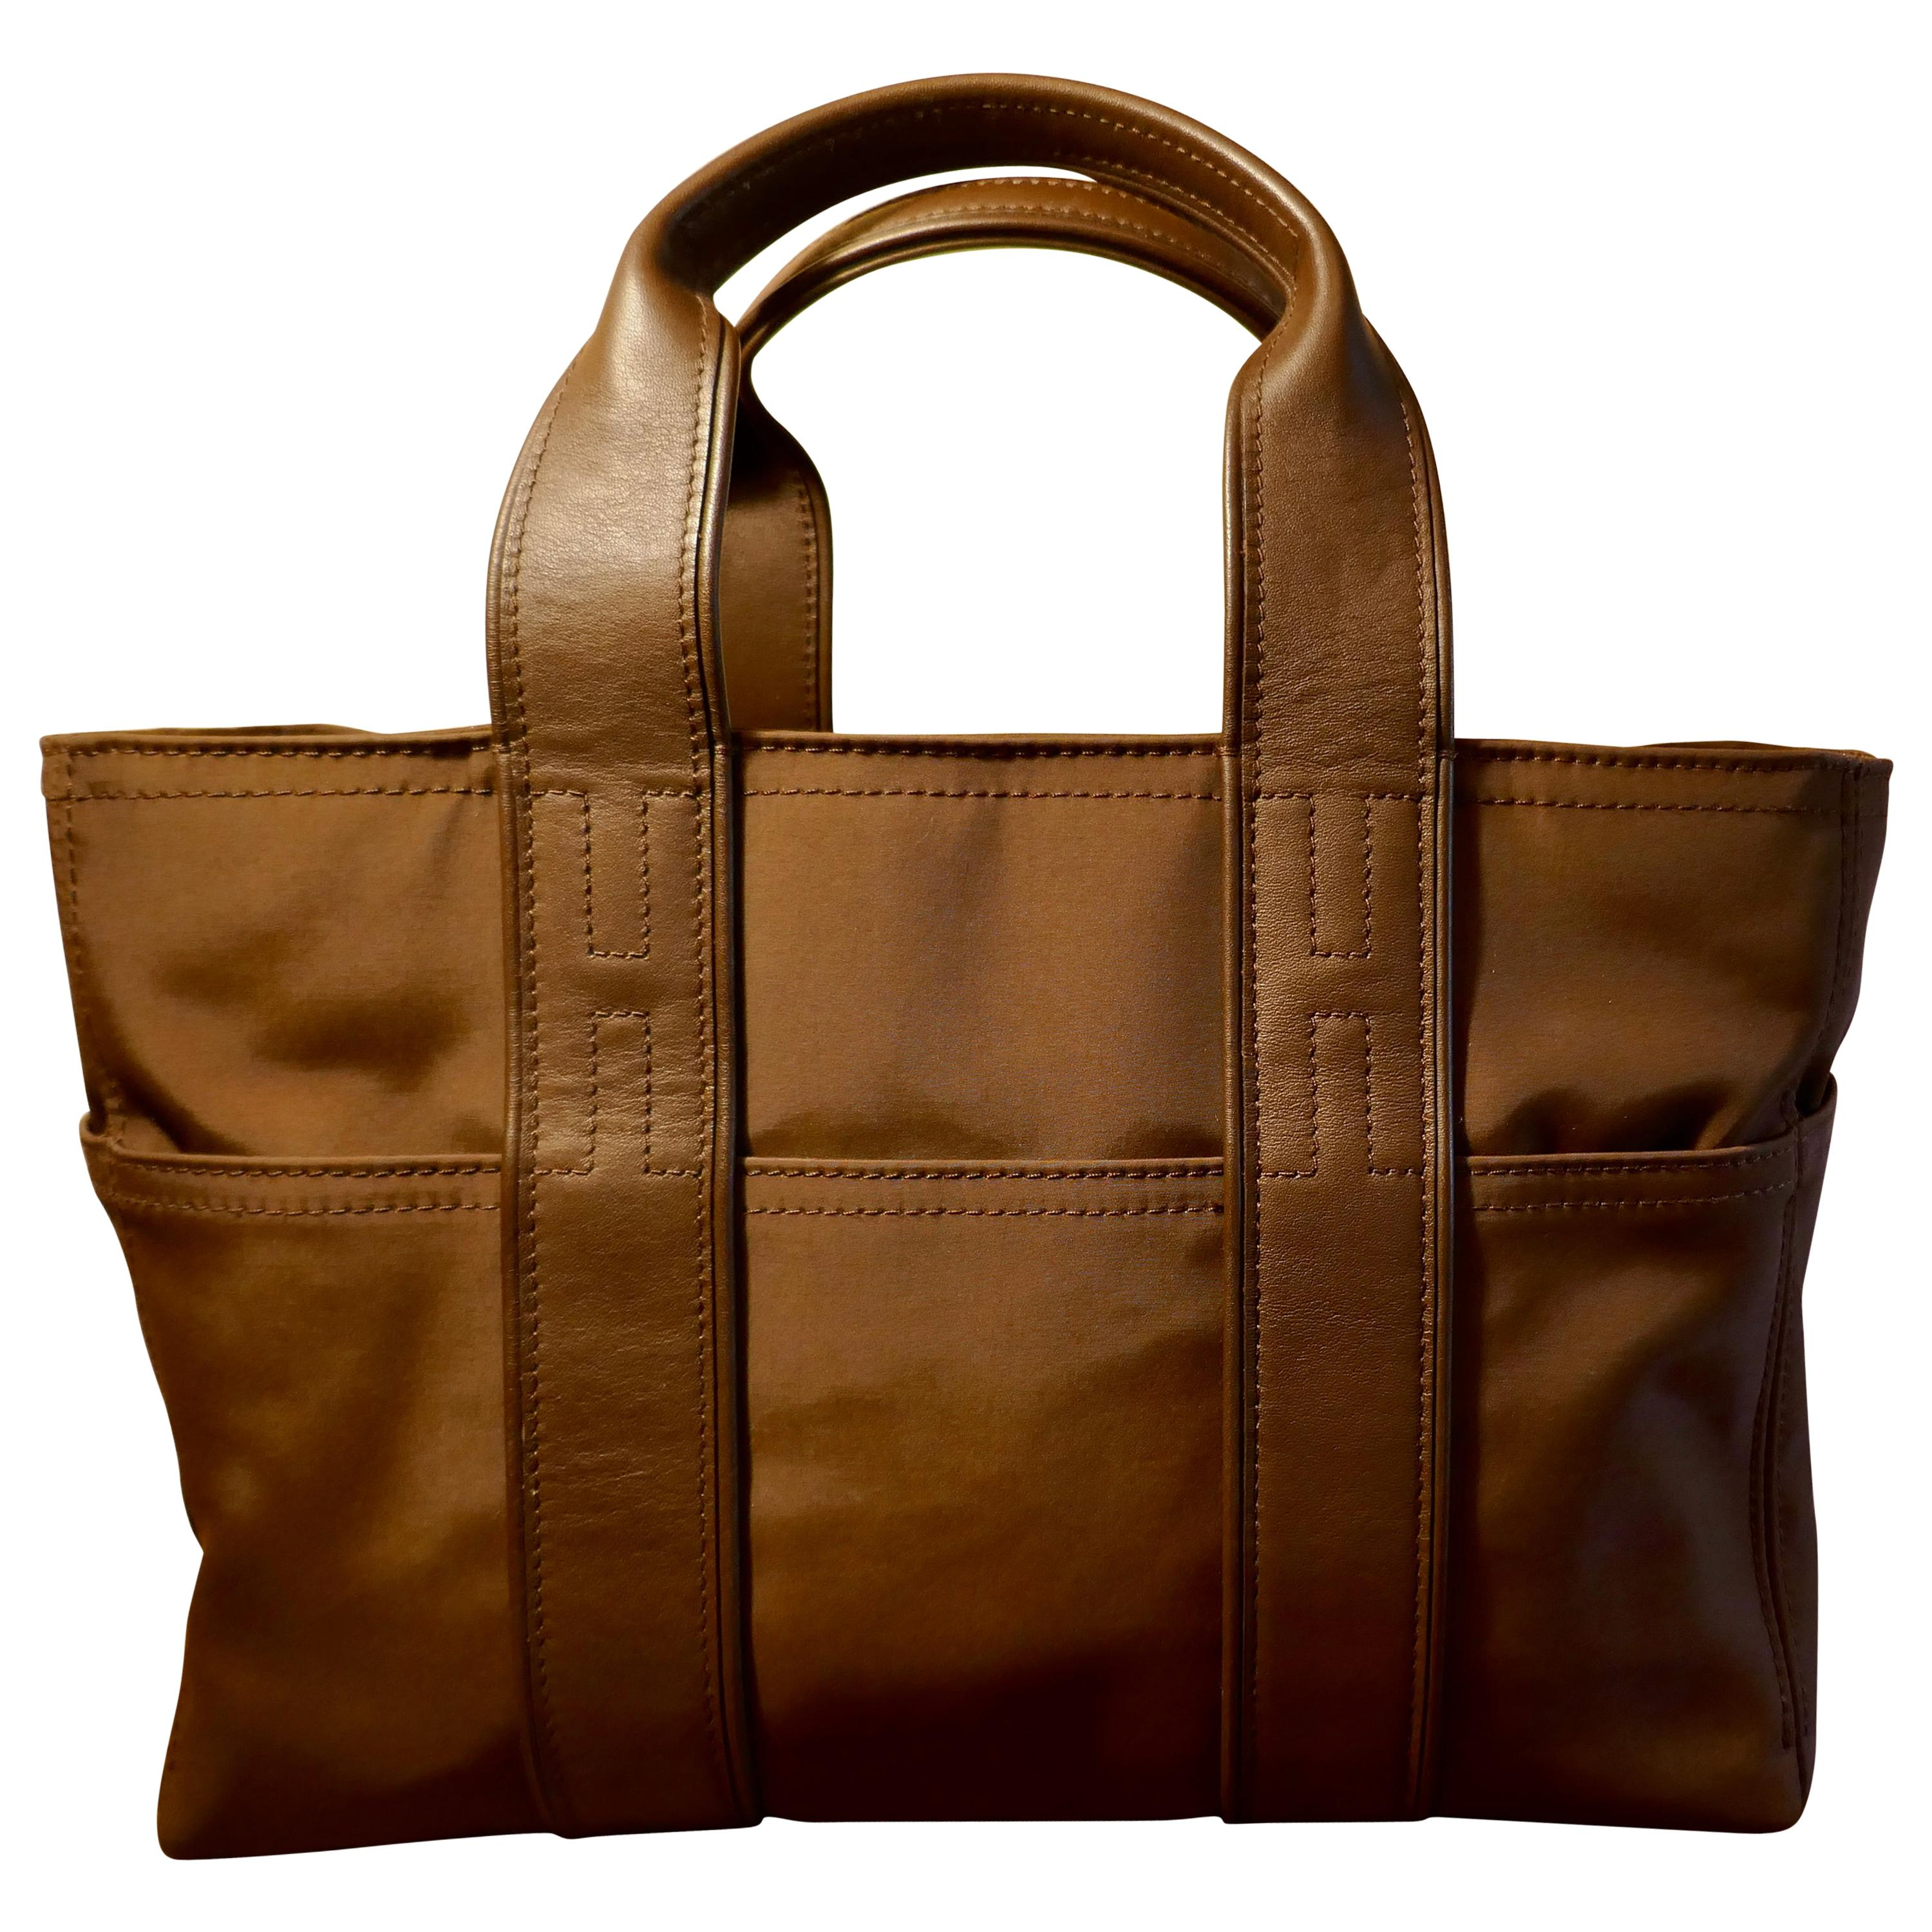 Vintage Authentic Hermes Chocolate Brown Leather and Nylon Acapulco PM Tote Bag